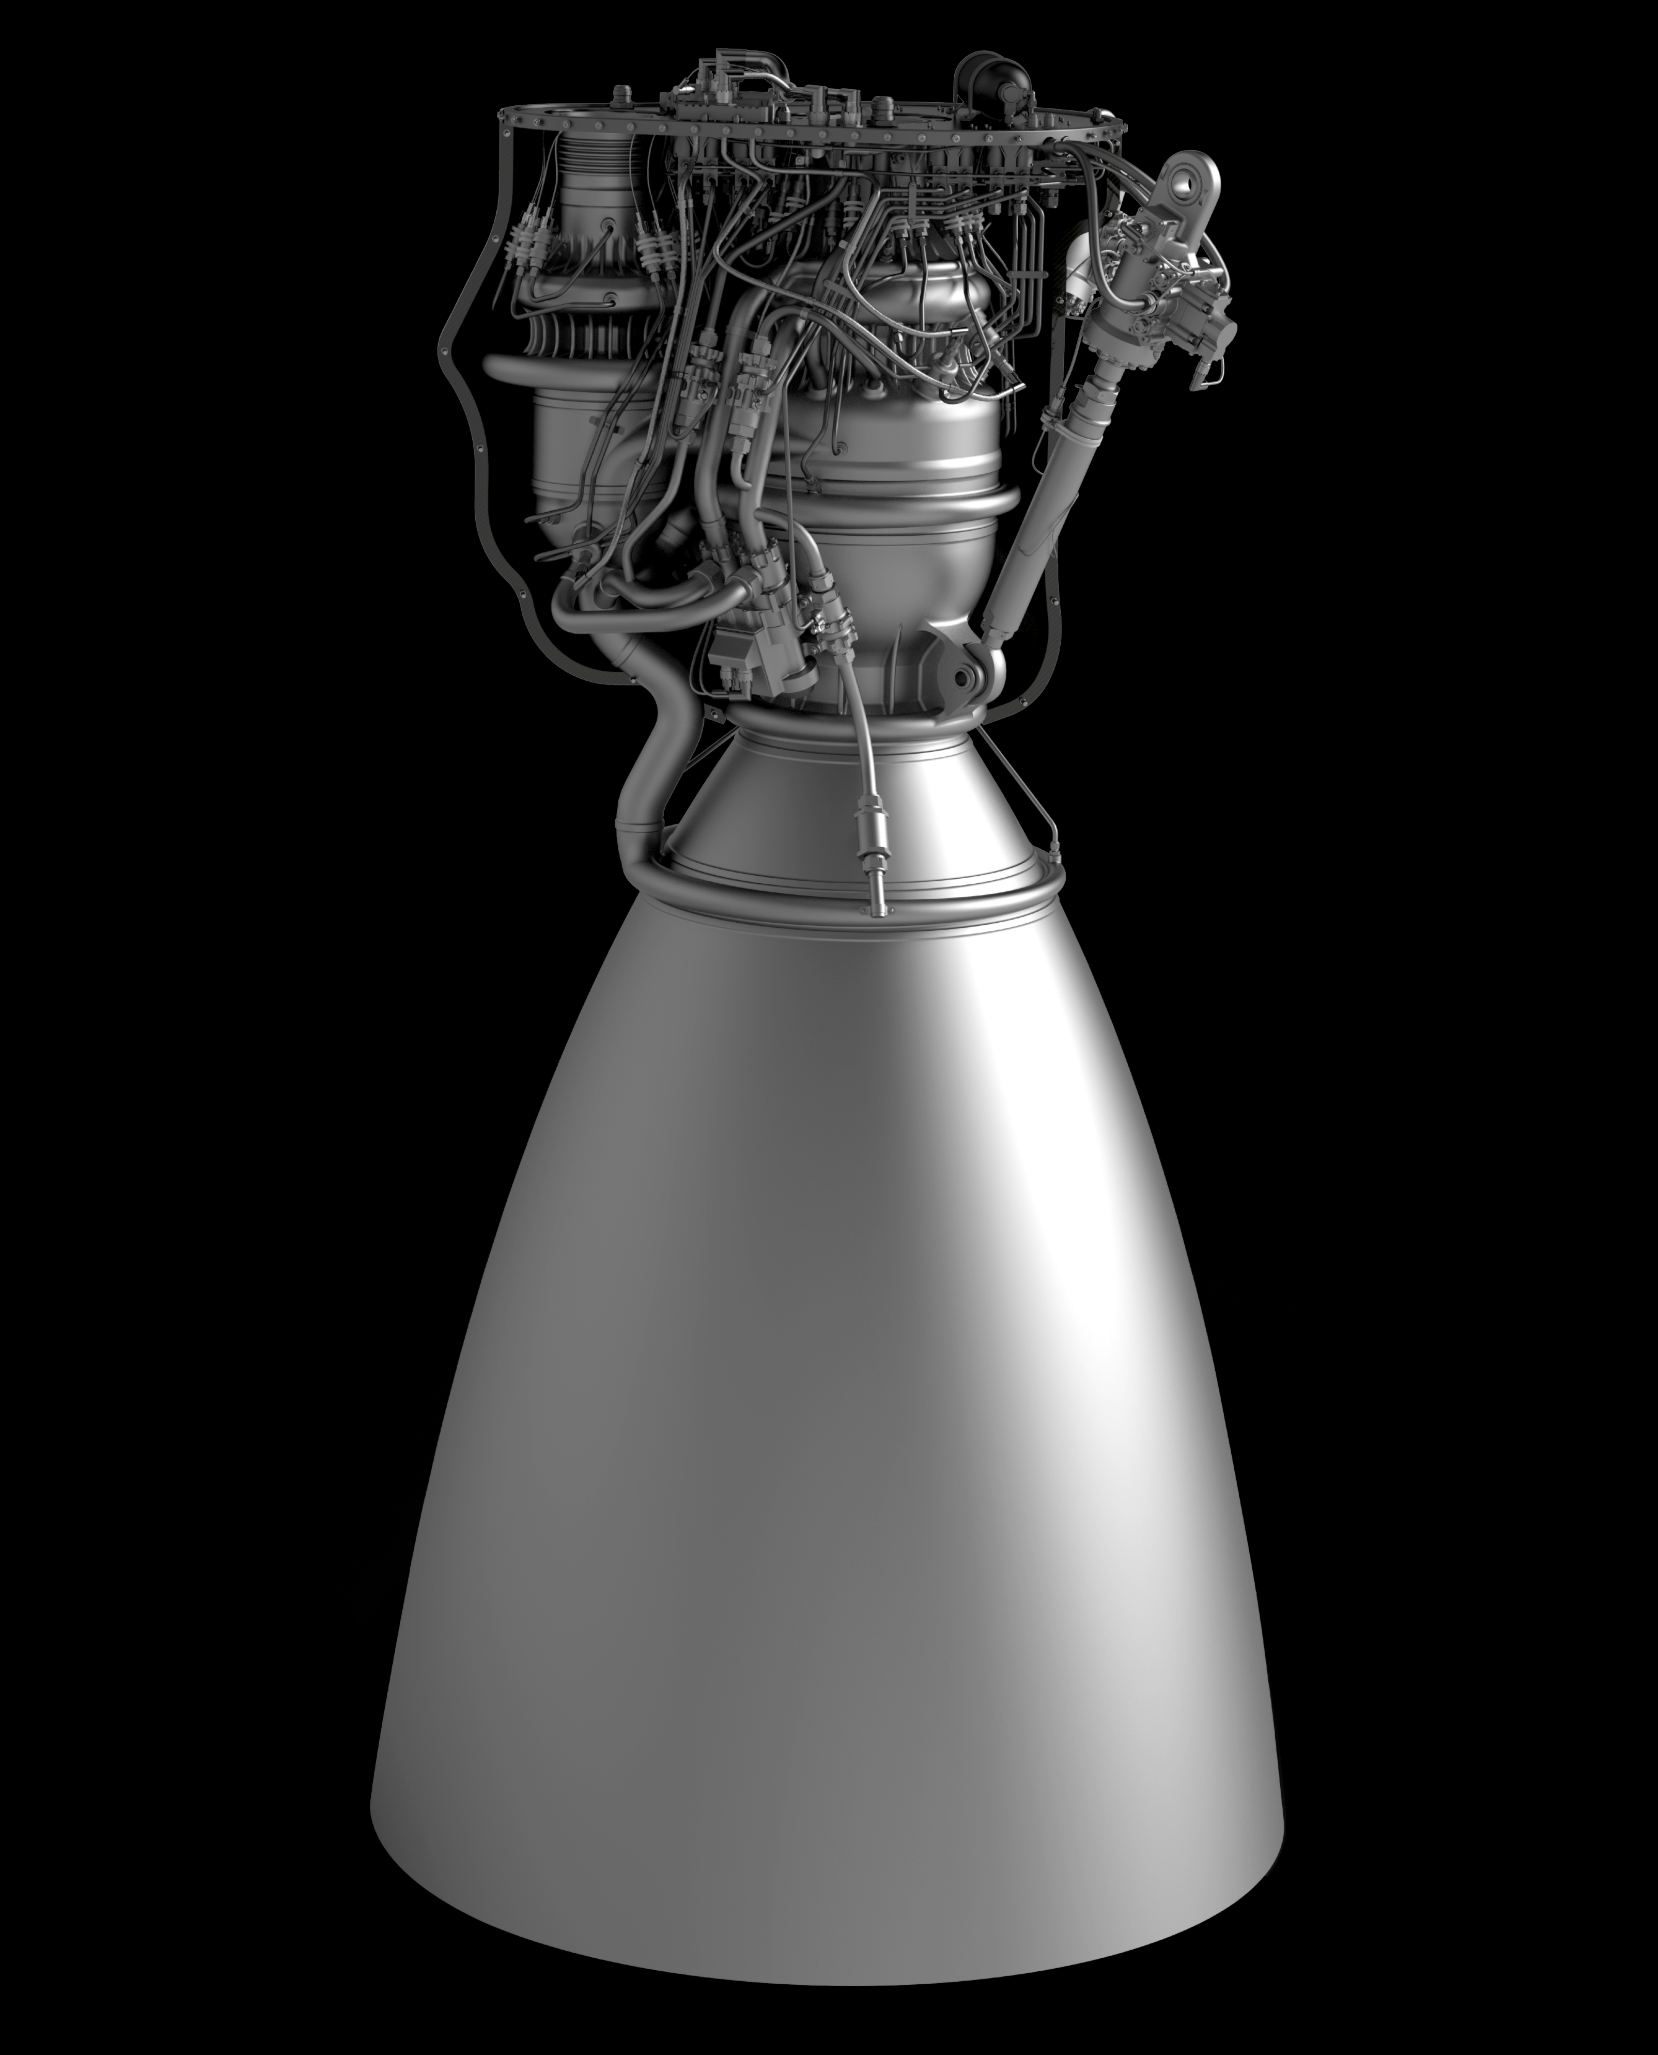 https://www.teslarati.com/wp-content/uploads/2019/01/Raptor-Vac-2016-SpaceX-1.png